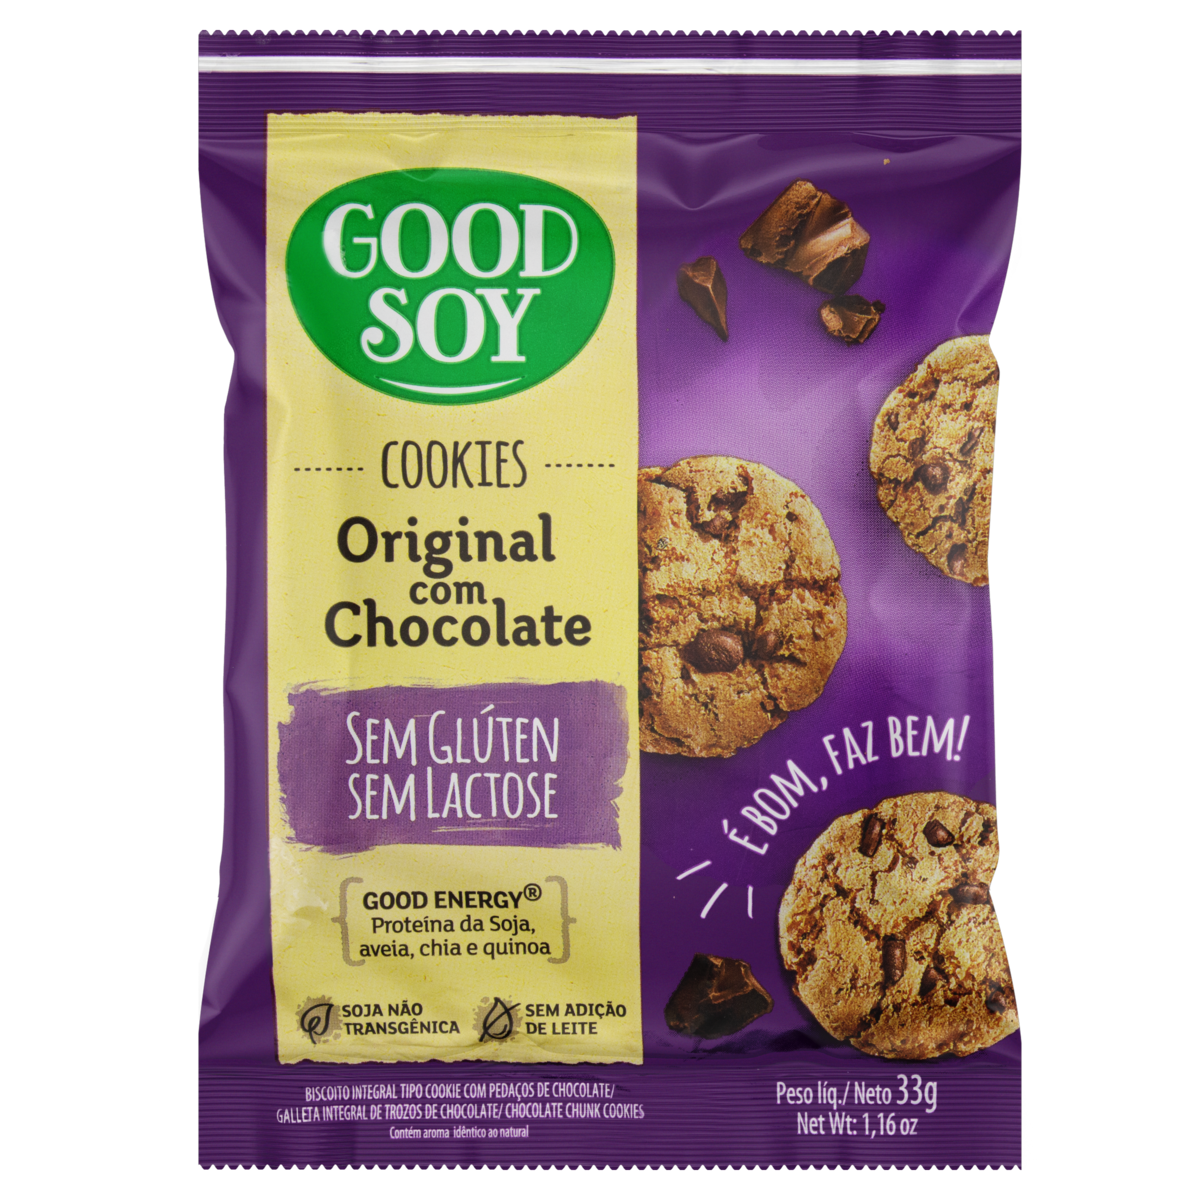 7898380410303 - BISCOITO COOKIES GOOD SOY GTAS CHOCOLATE S/GL